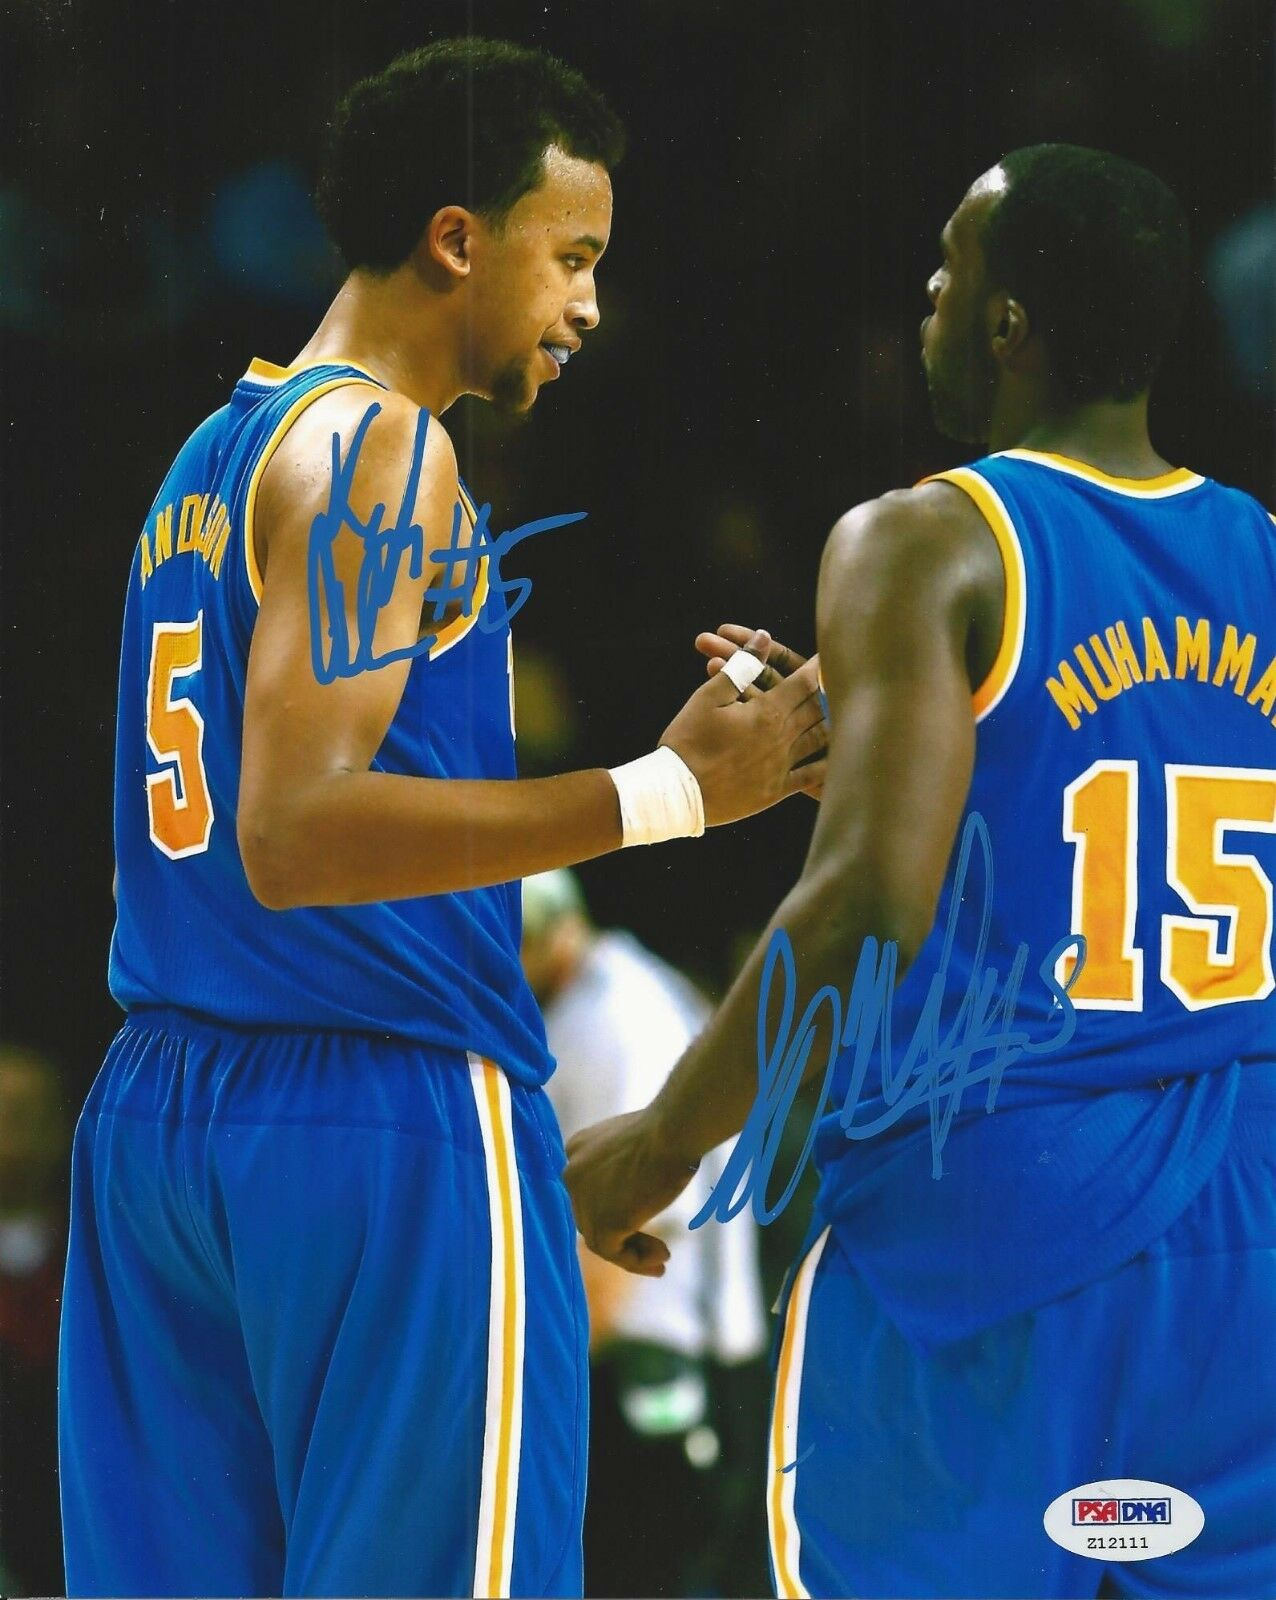 Kyle Anderson & Shabazz Muhammad Signed UCLA Bruins 8x10 photo PSA/DNA # Z12111